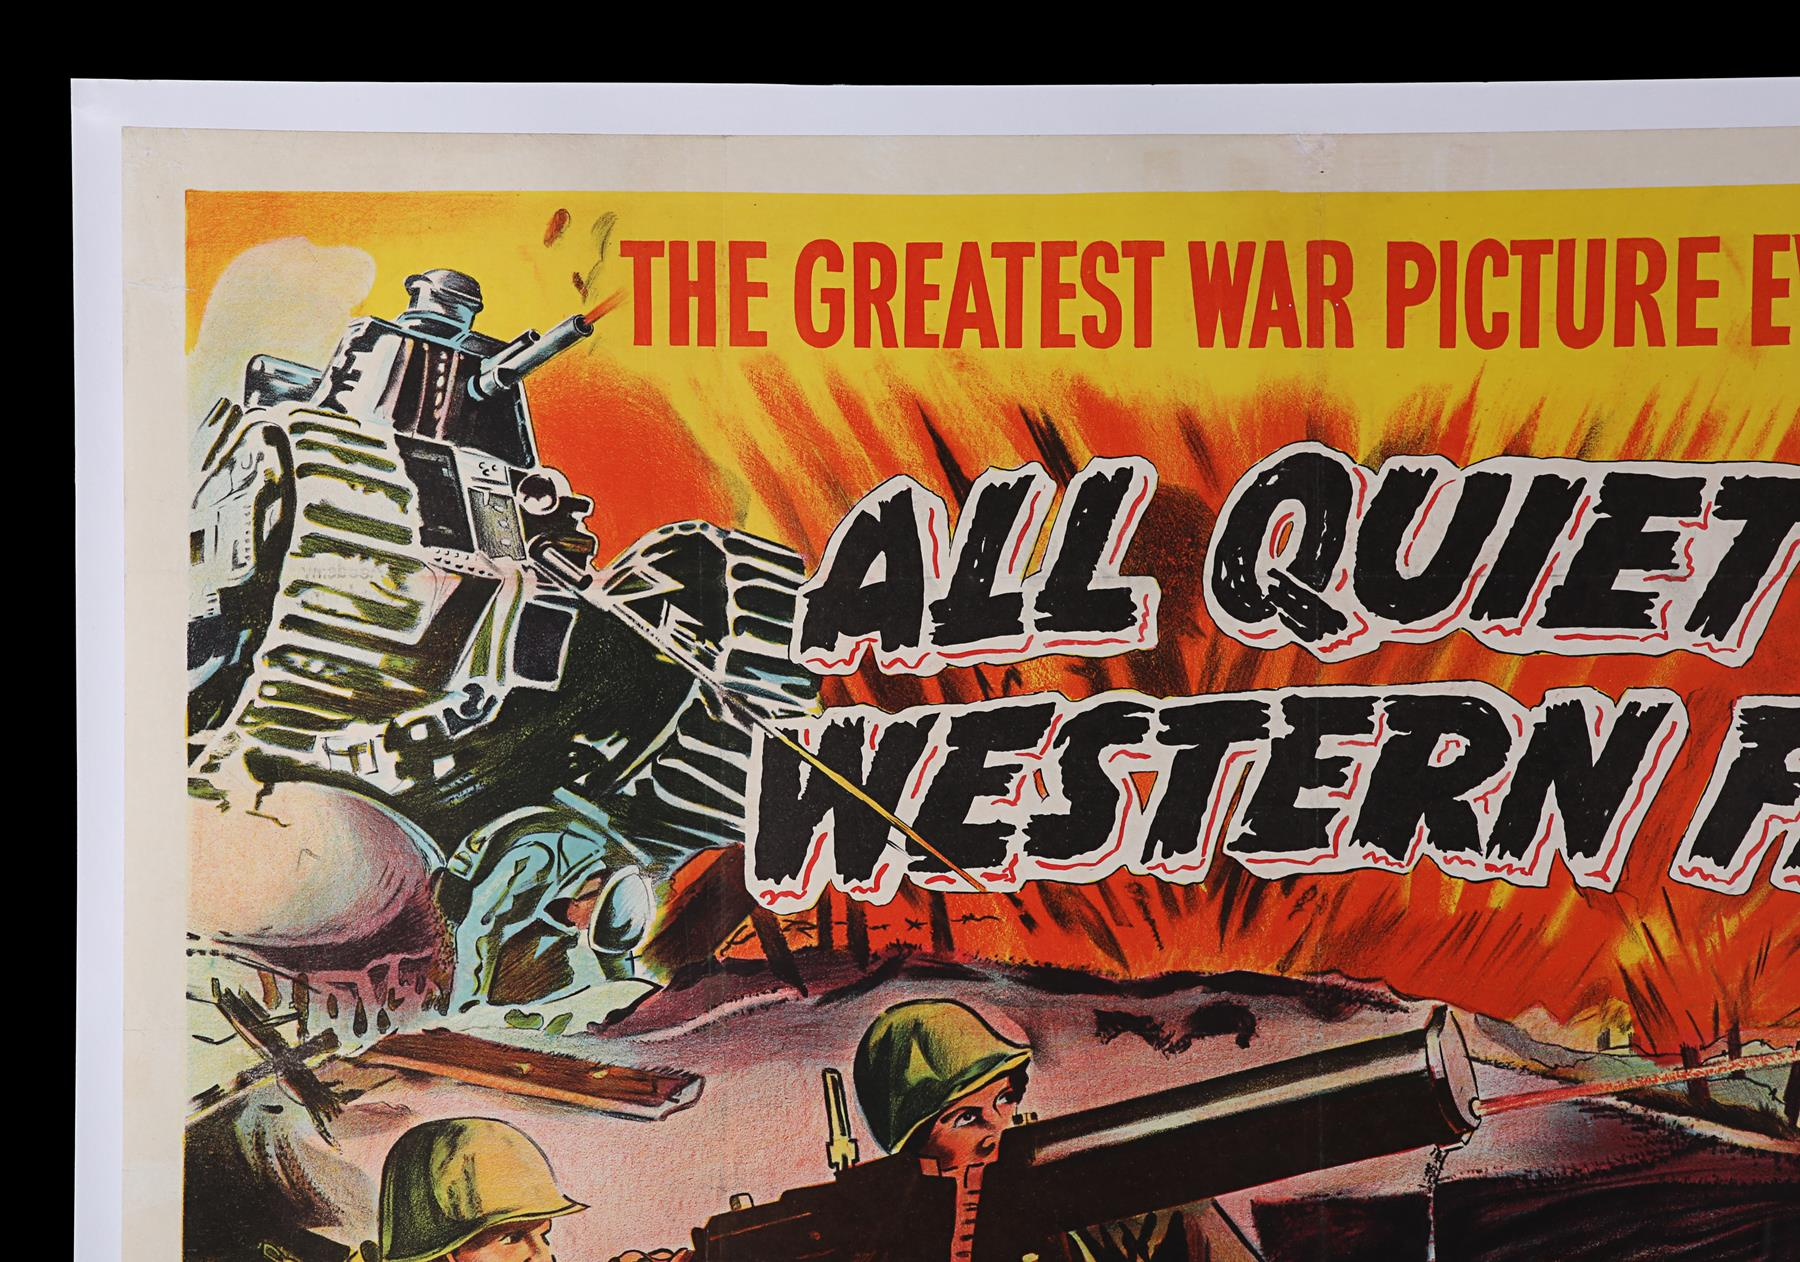 ALL QUIET ON THE WESTERN FRONT (1930) - UK Quad, 1950 - Image 2 of 6